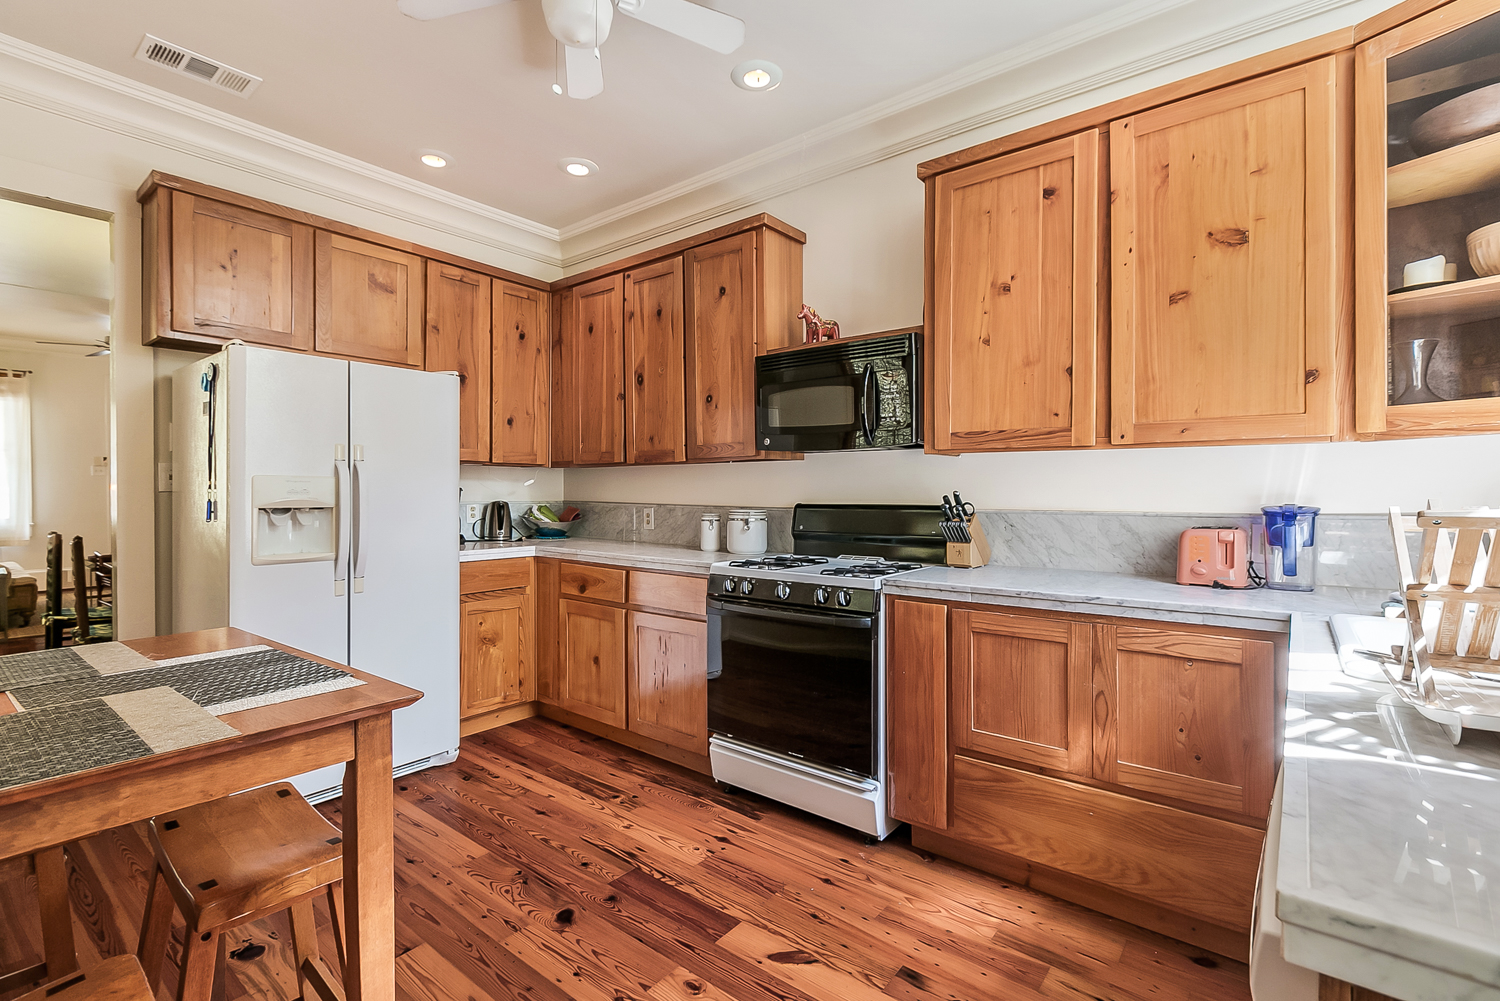 Uptown, House, 2 beds, 1.5 baths, $3000 per month New Orleans Rental - devie image_5